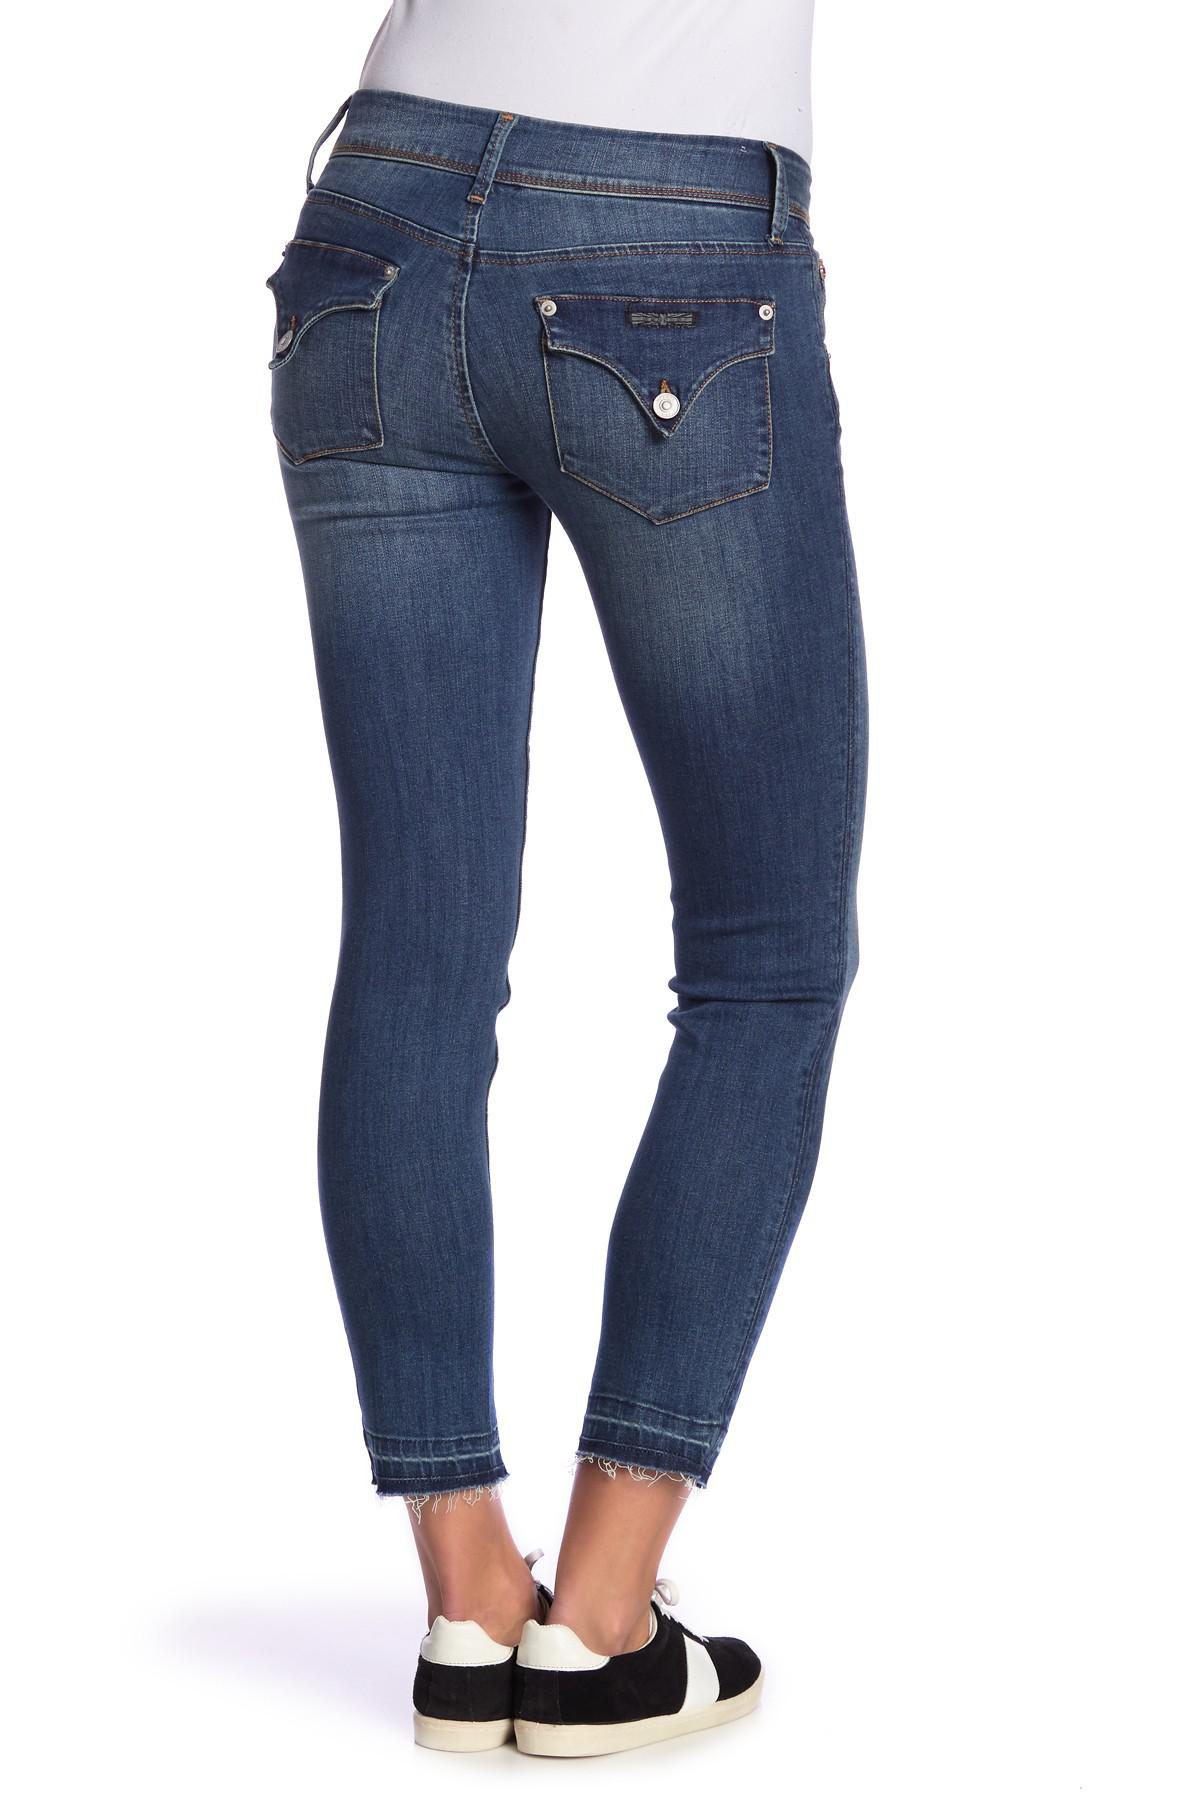 Hudson Collin Flap Skinny Ankle Jeans Distressed White 25 /&  26  NEW $189